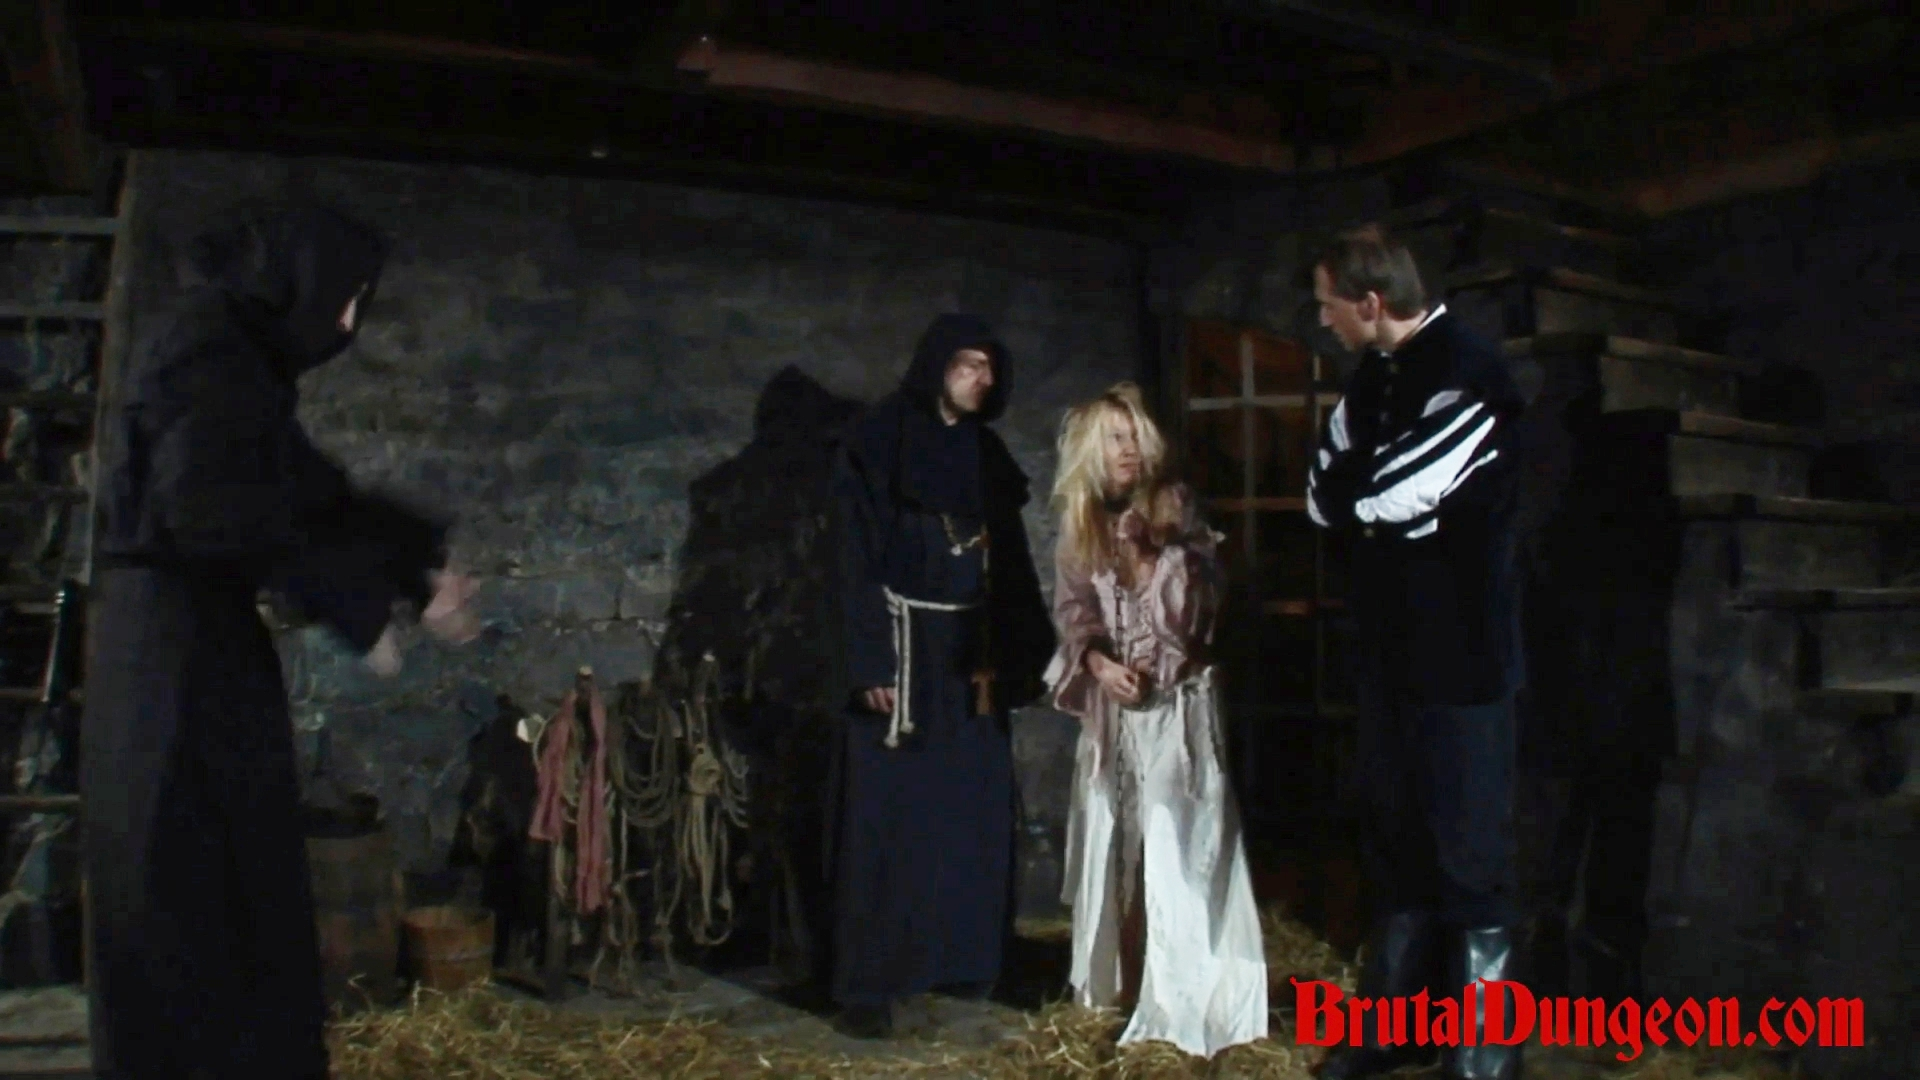 Blonde romina imprisoned bdsm gang bang  witch romina was caught practicing her craft by a neighbor  she s arrested and brought to our dungeon where everything is needed for proper and creative punishments  nice blonde romina must endure imprisonment bdsm. Witch Romina was caught practicing her craft by a neighbor. She's arrested and brought to our dungeon where everything is needed for proper and creative punishments. beautiful blonde Romina must endure imprisonment, BDSM gang bang, domination, rope bondage and suspension, spanking, slapping, fingering, flogging, breast, nipple and pussy torment.